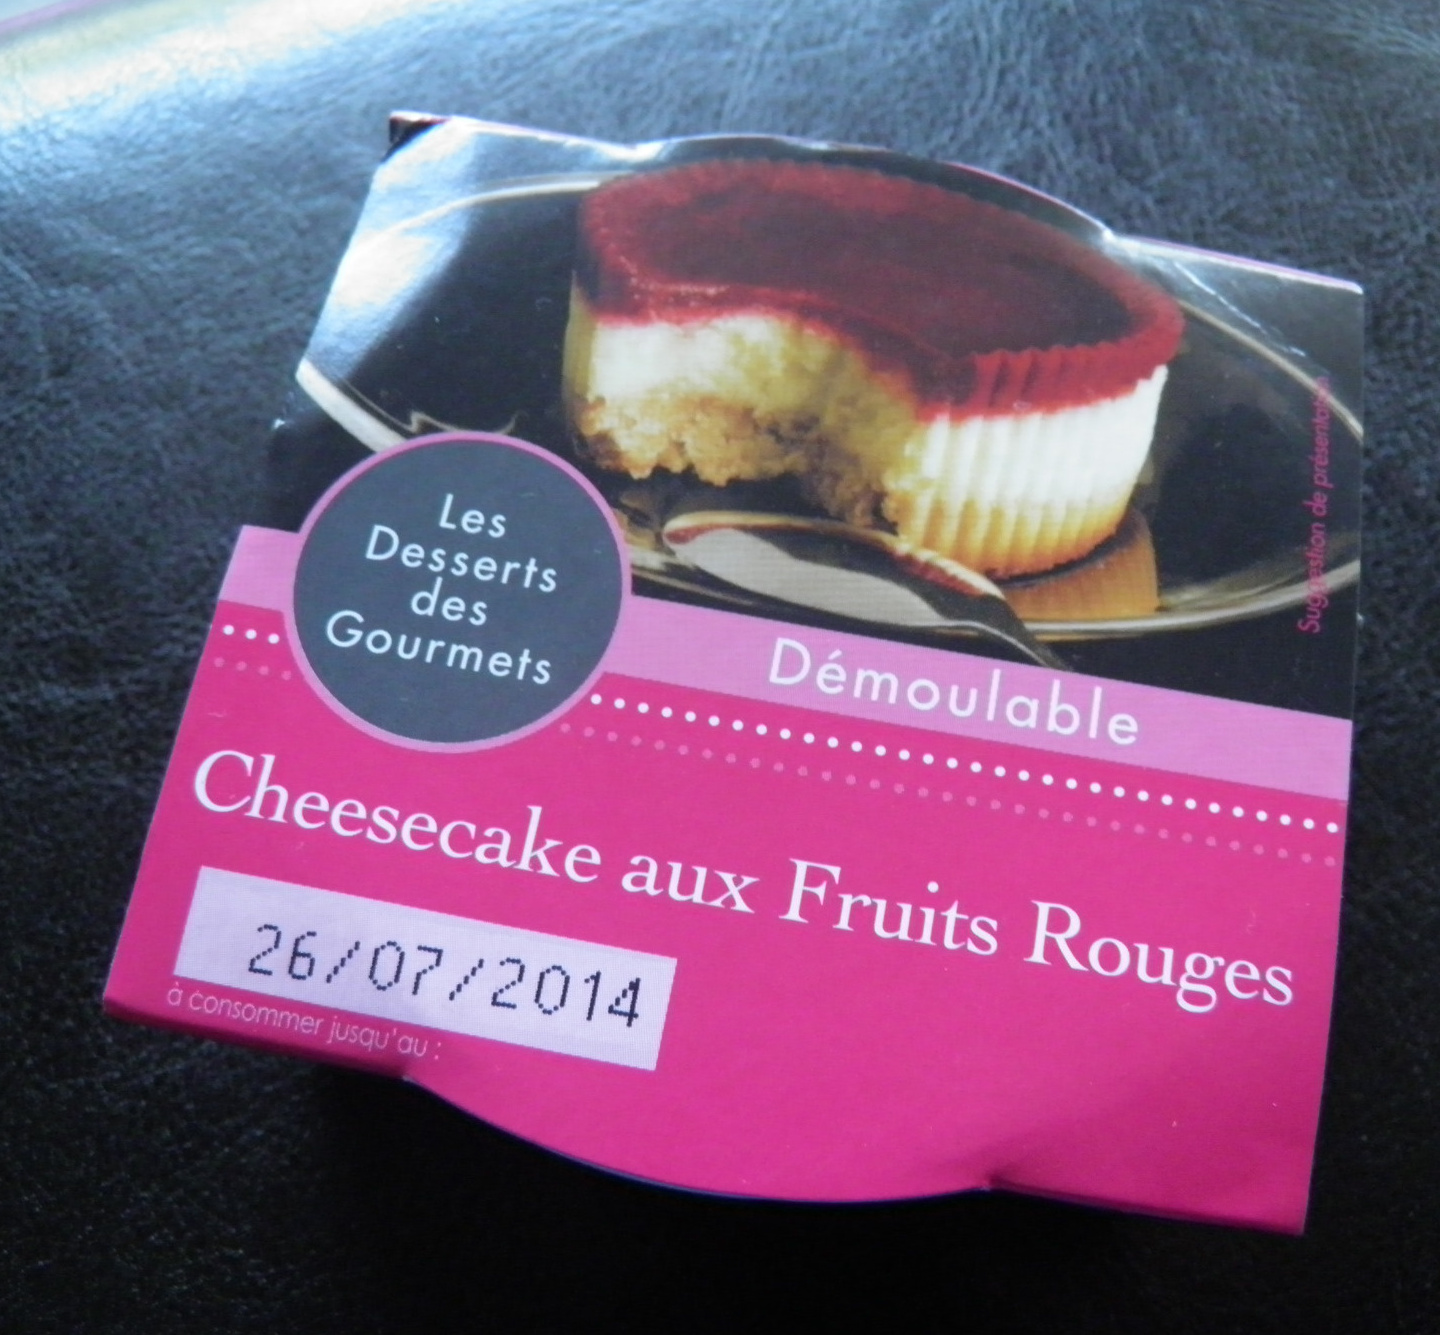 "Cheesecake aux fruits rouges ""Les Desserts des Gourmets"" - Product - fr"